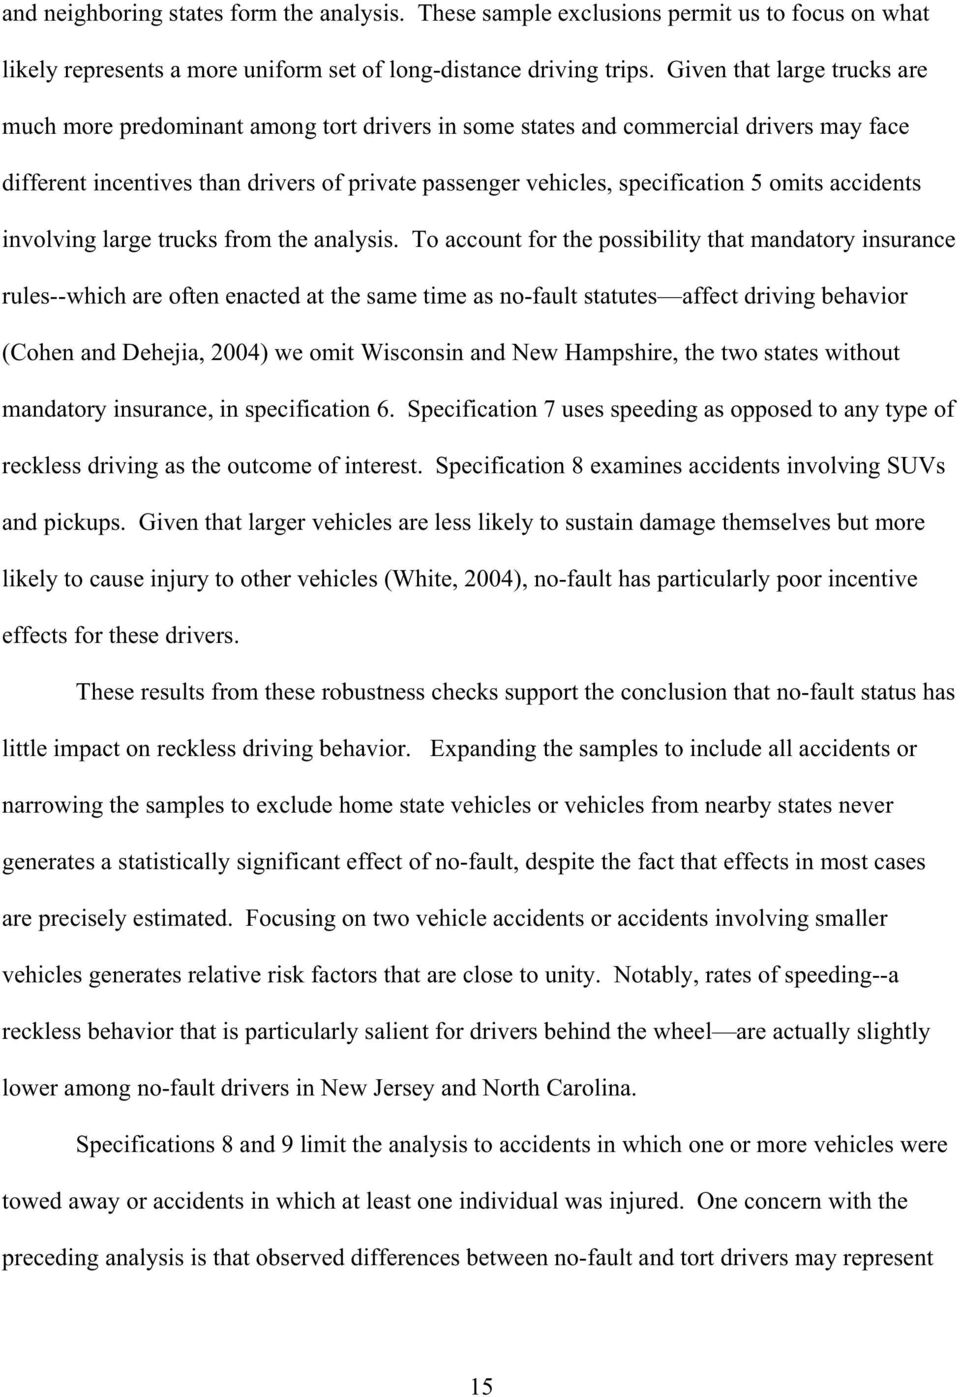 omits accidents involving large trucks from the analysis.